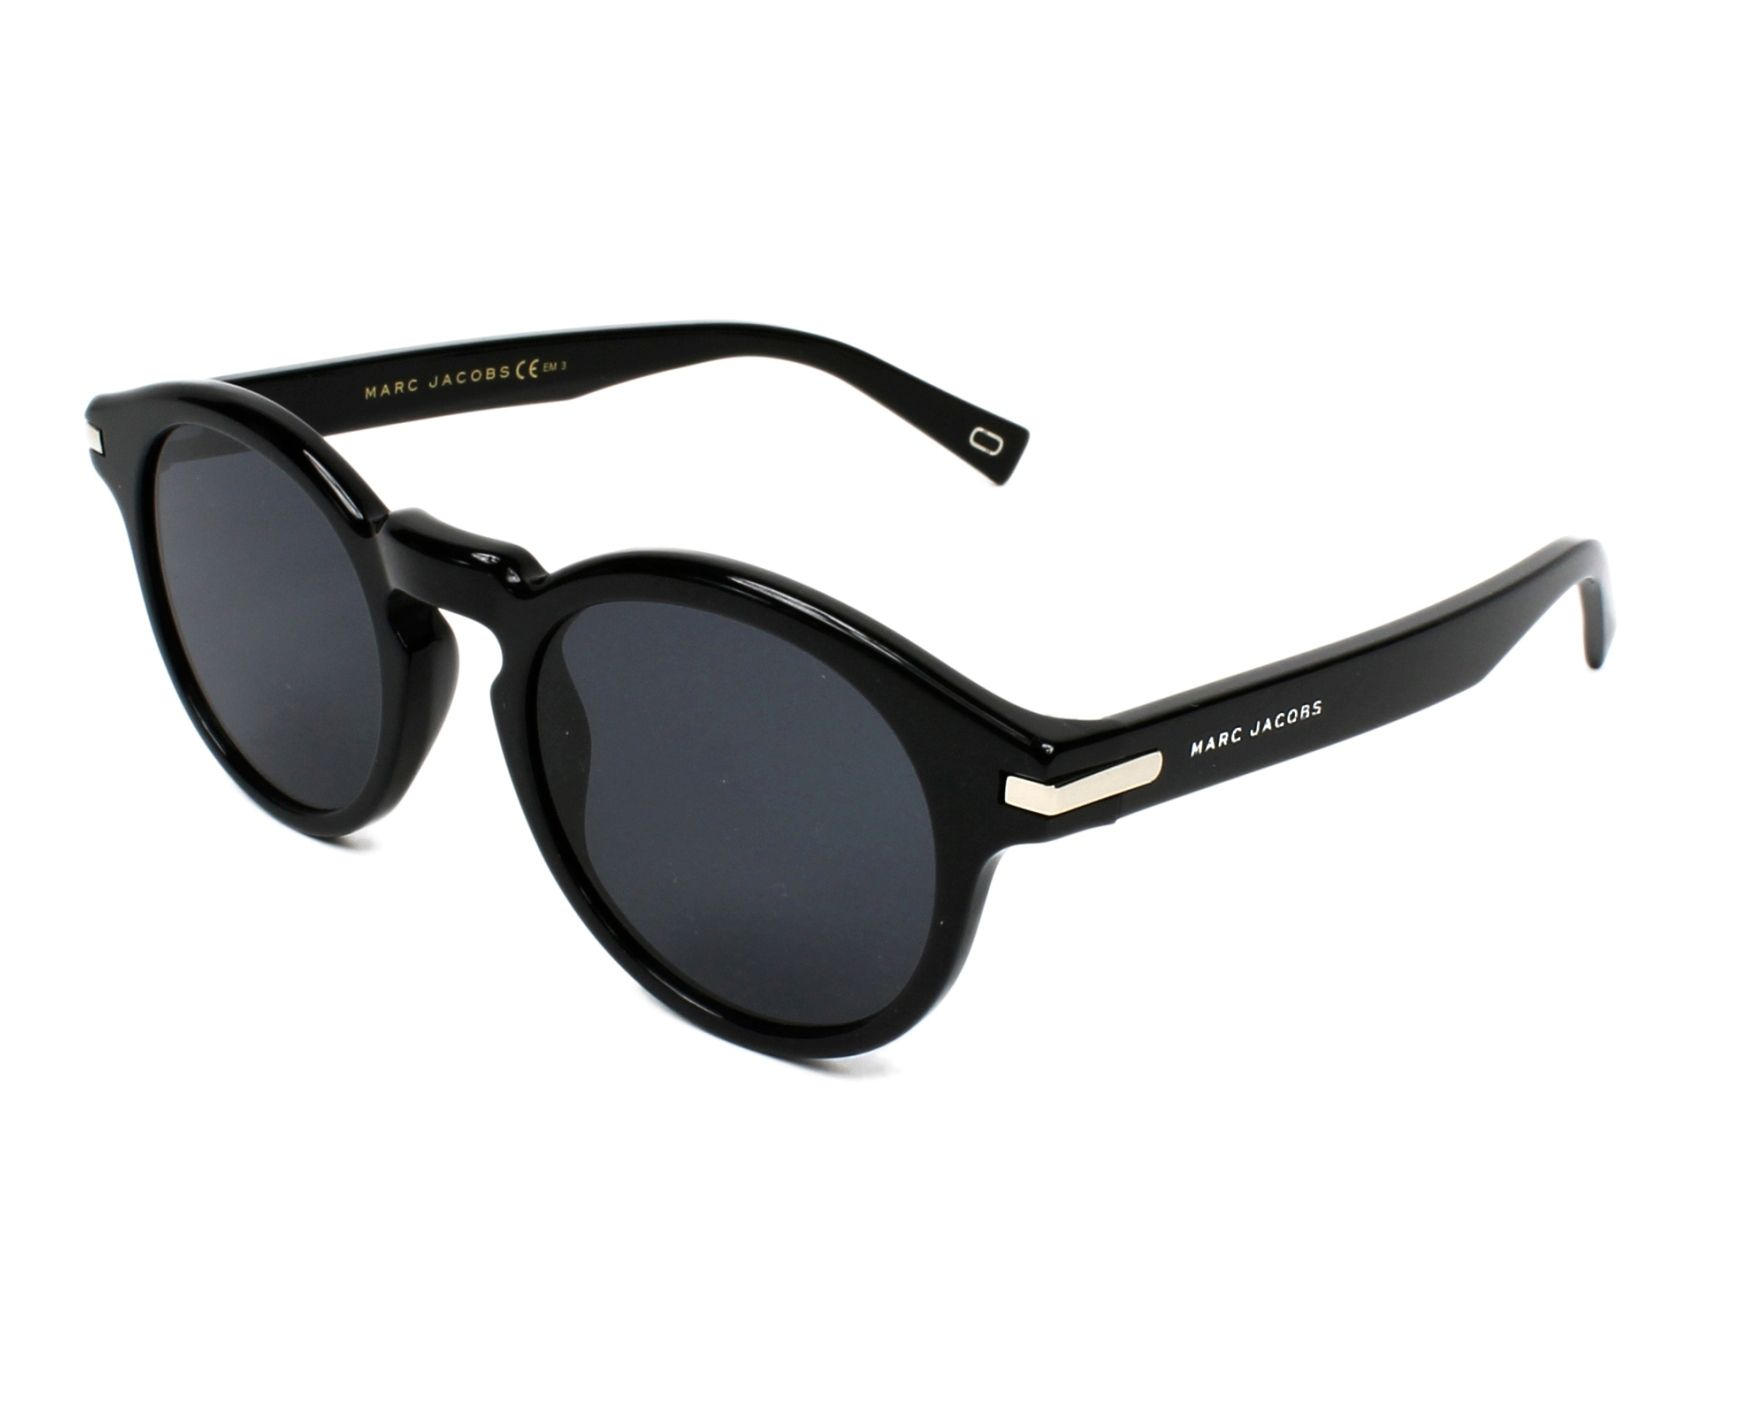 Marc Jacobs Marc 184/S 807 ir Sonnenbrille o2yqdhZ